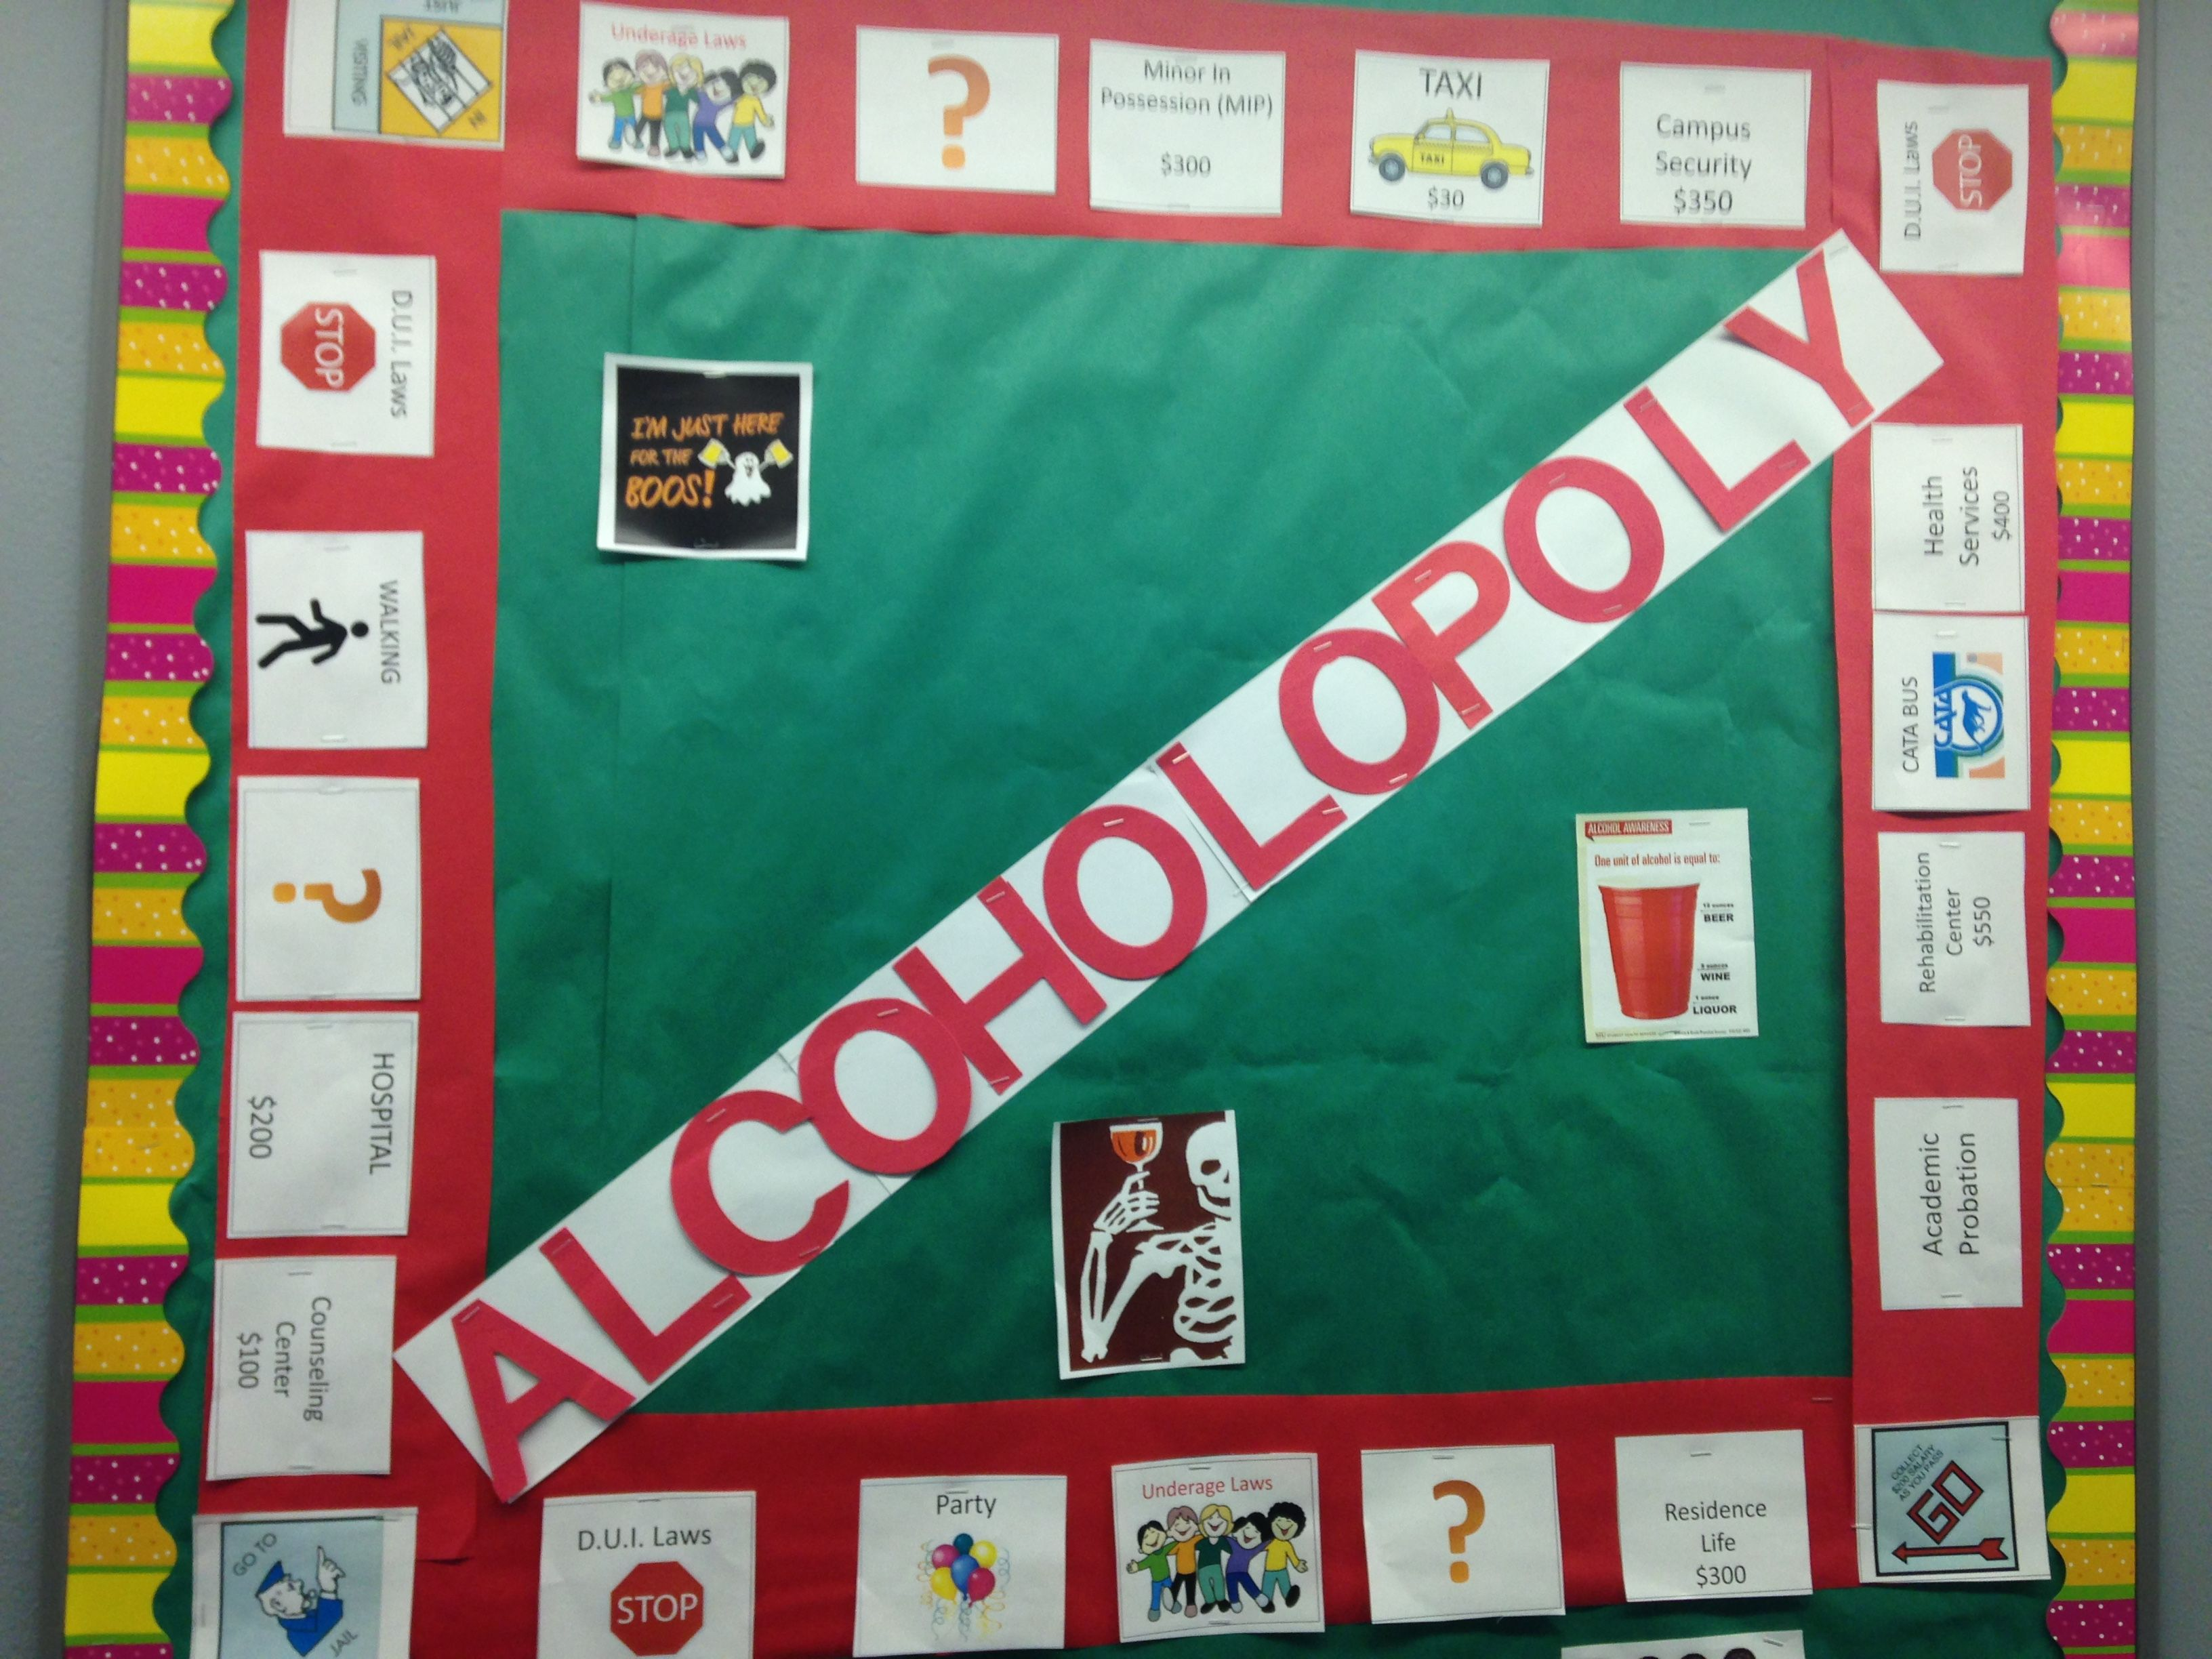 Alcoholopoly bulletin board adapted to school places and